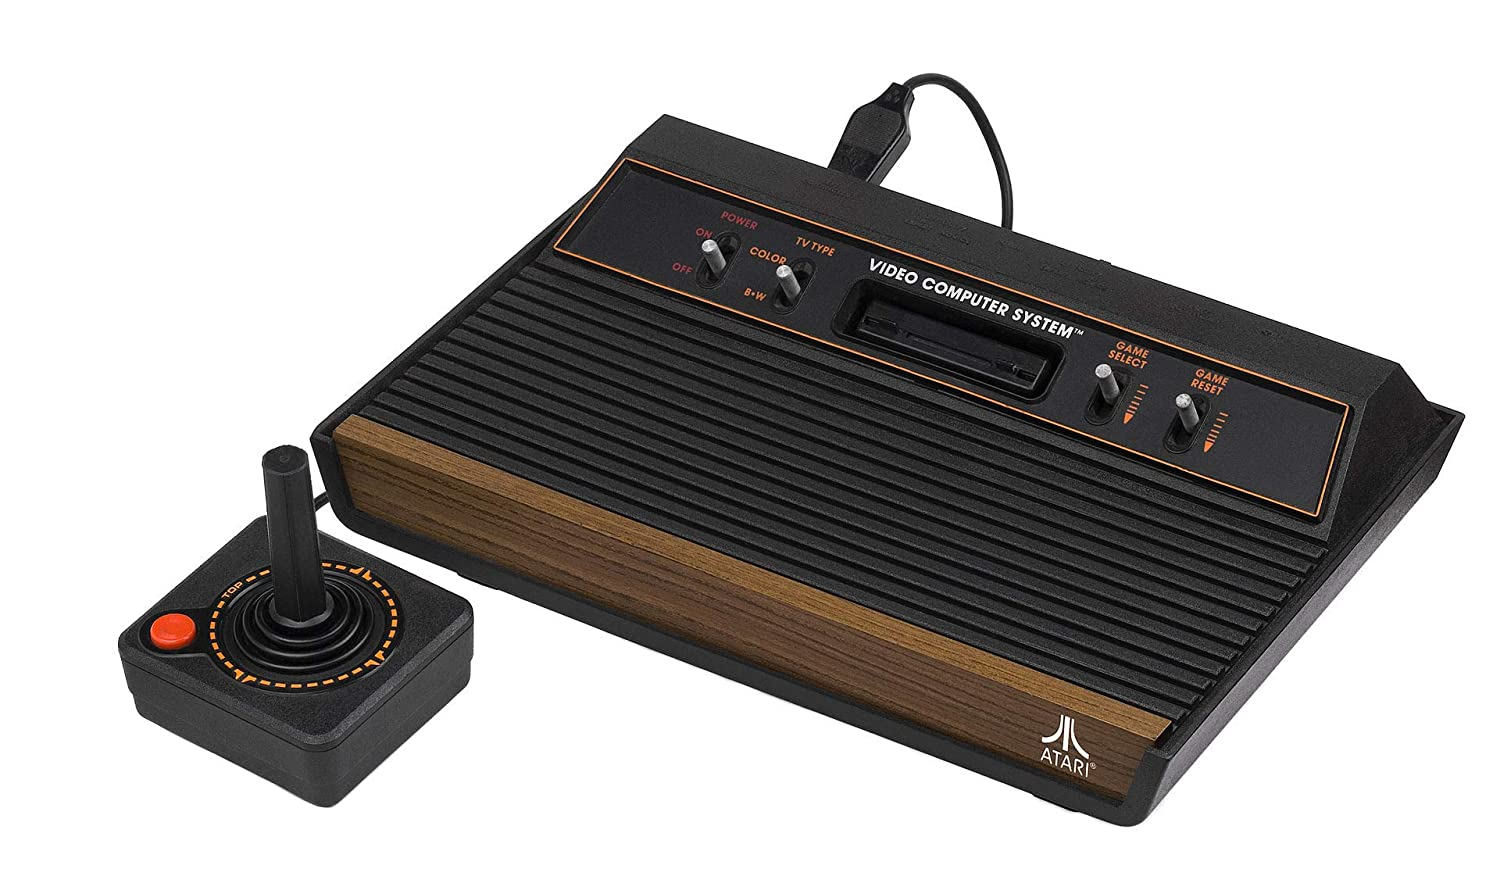 Amazon.com: Atari 2600 Video Computer System Console: Video Games